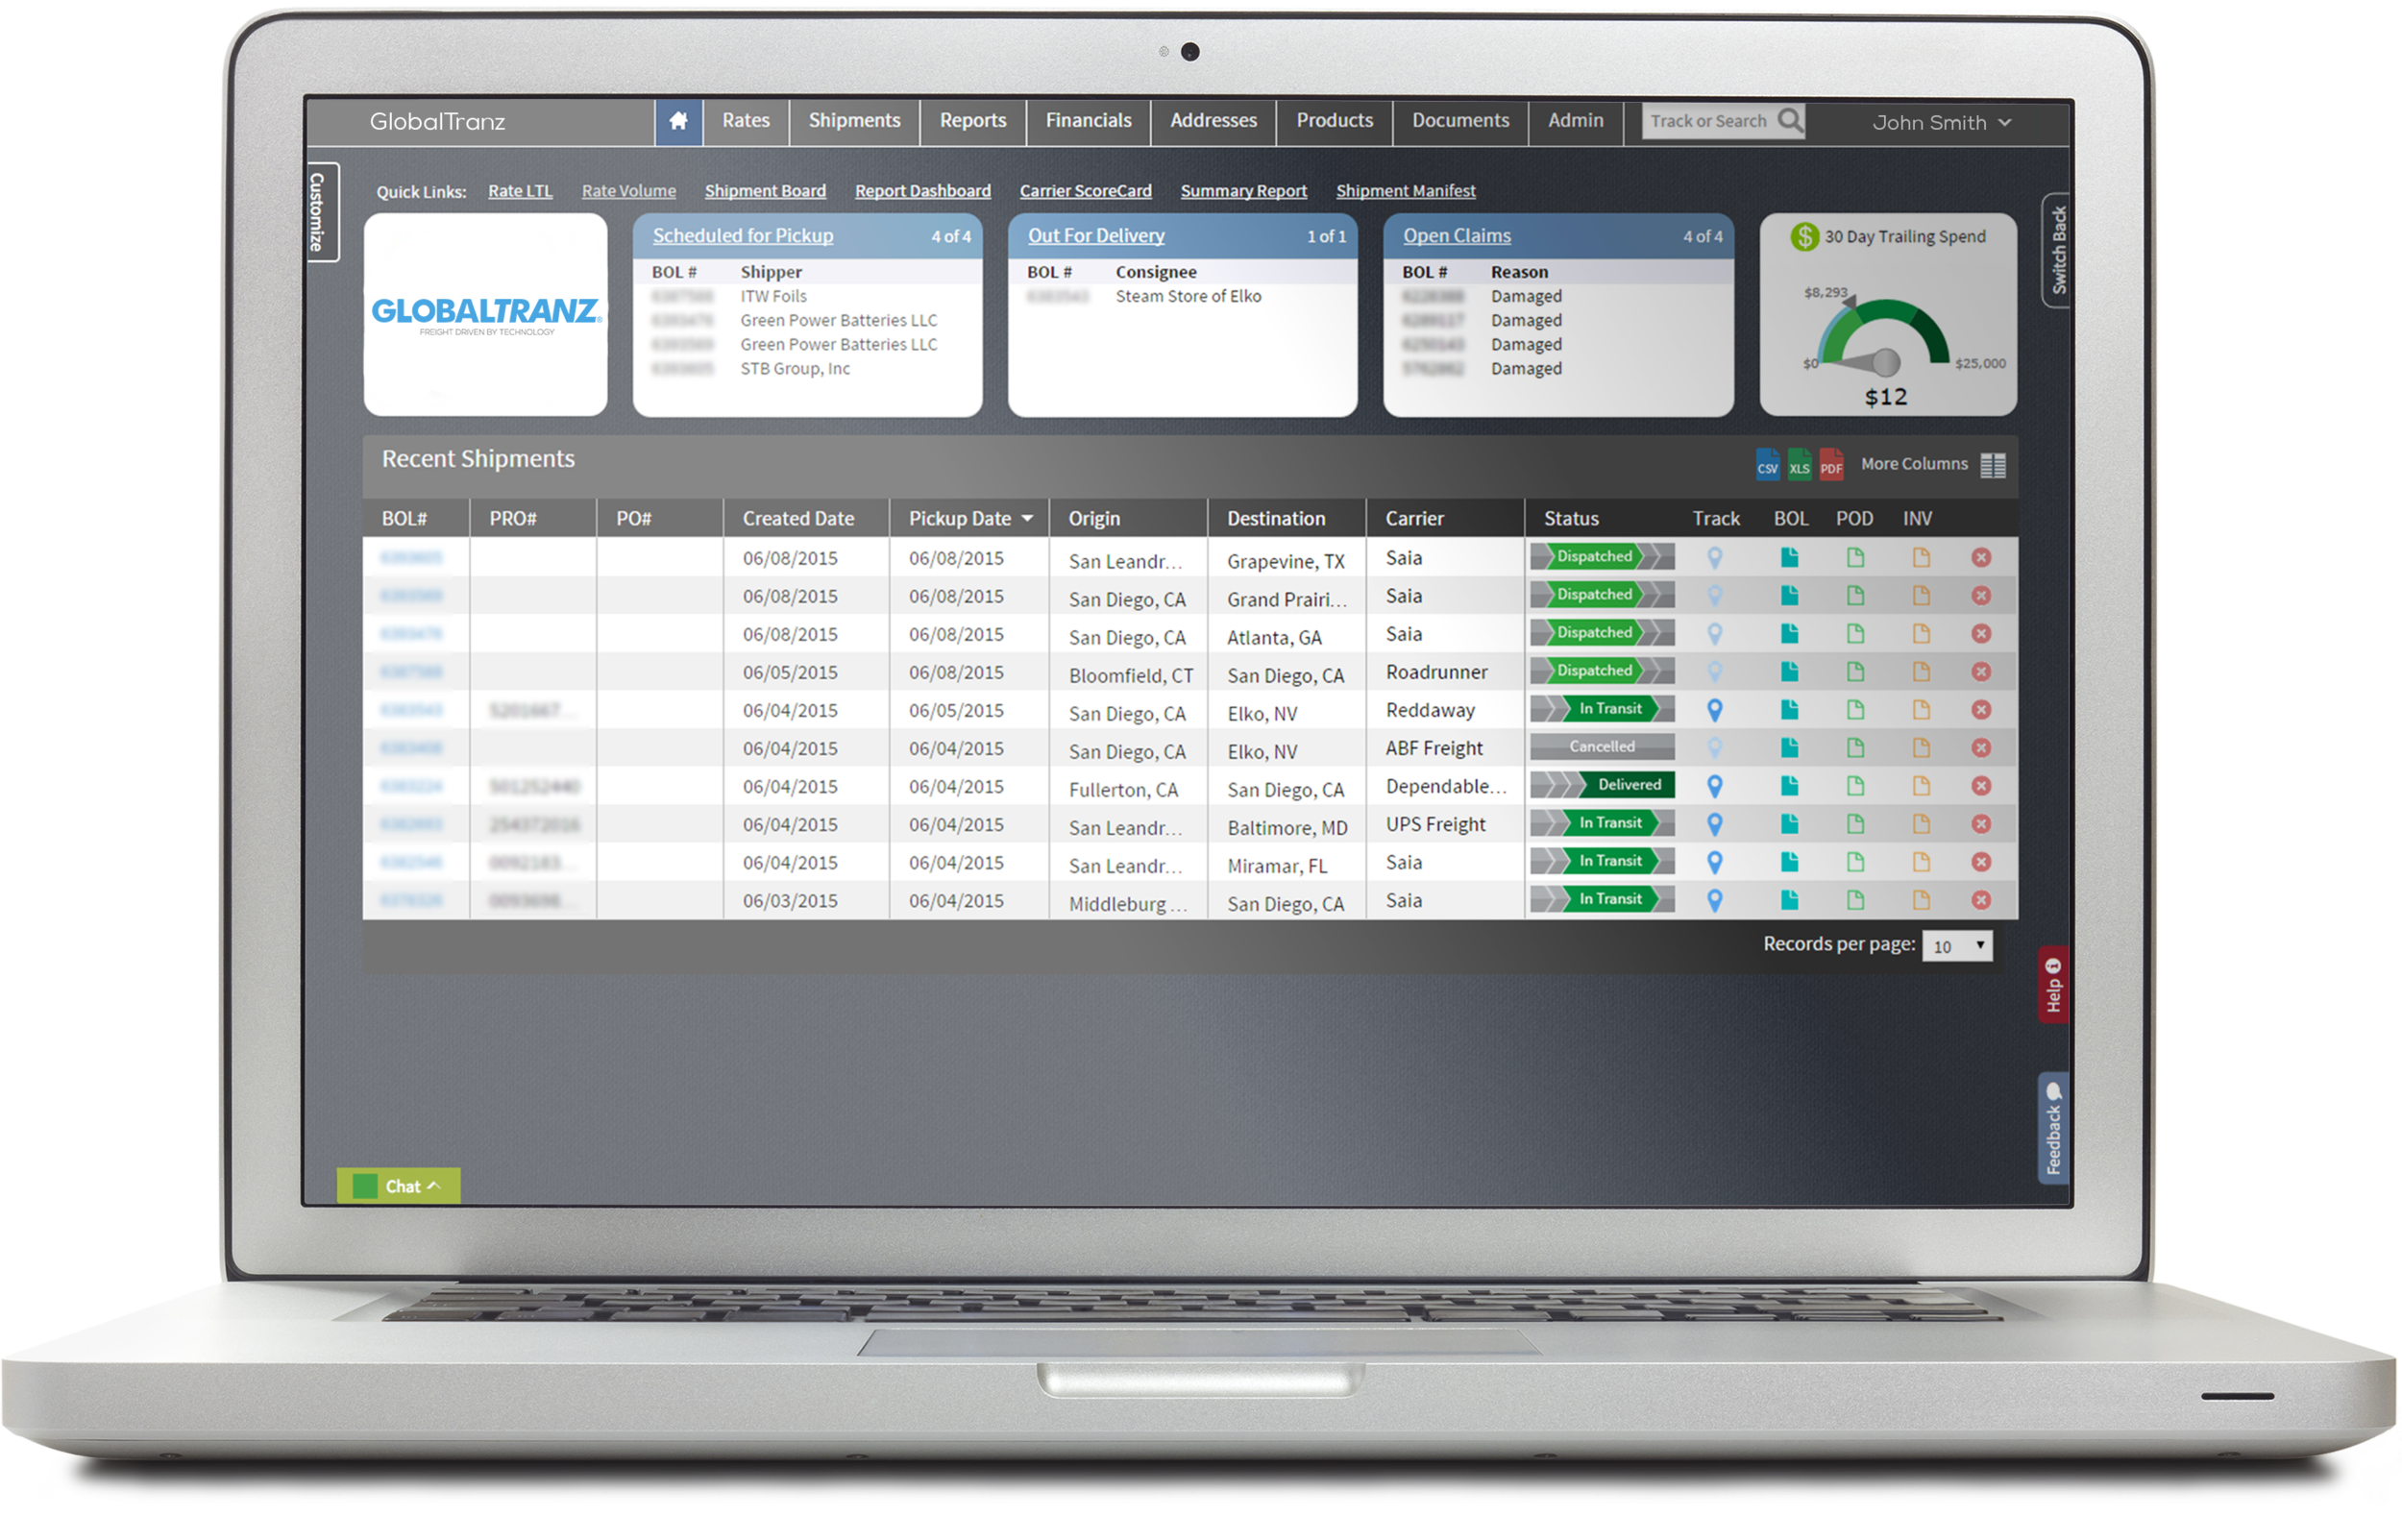 More Information - Reduce your freight spend and make your freight operations more efficient with a transportation management system designed to grow with your business. Request a demo today!!